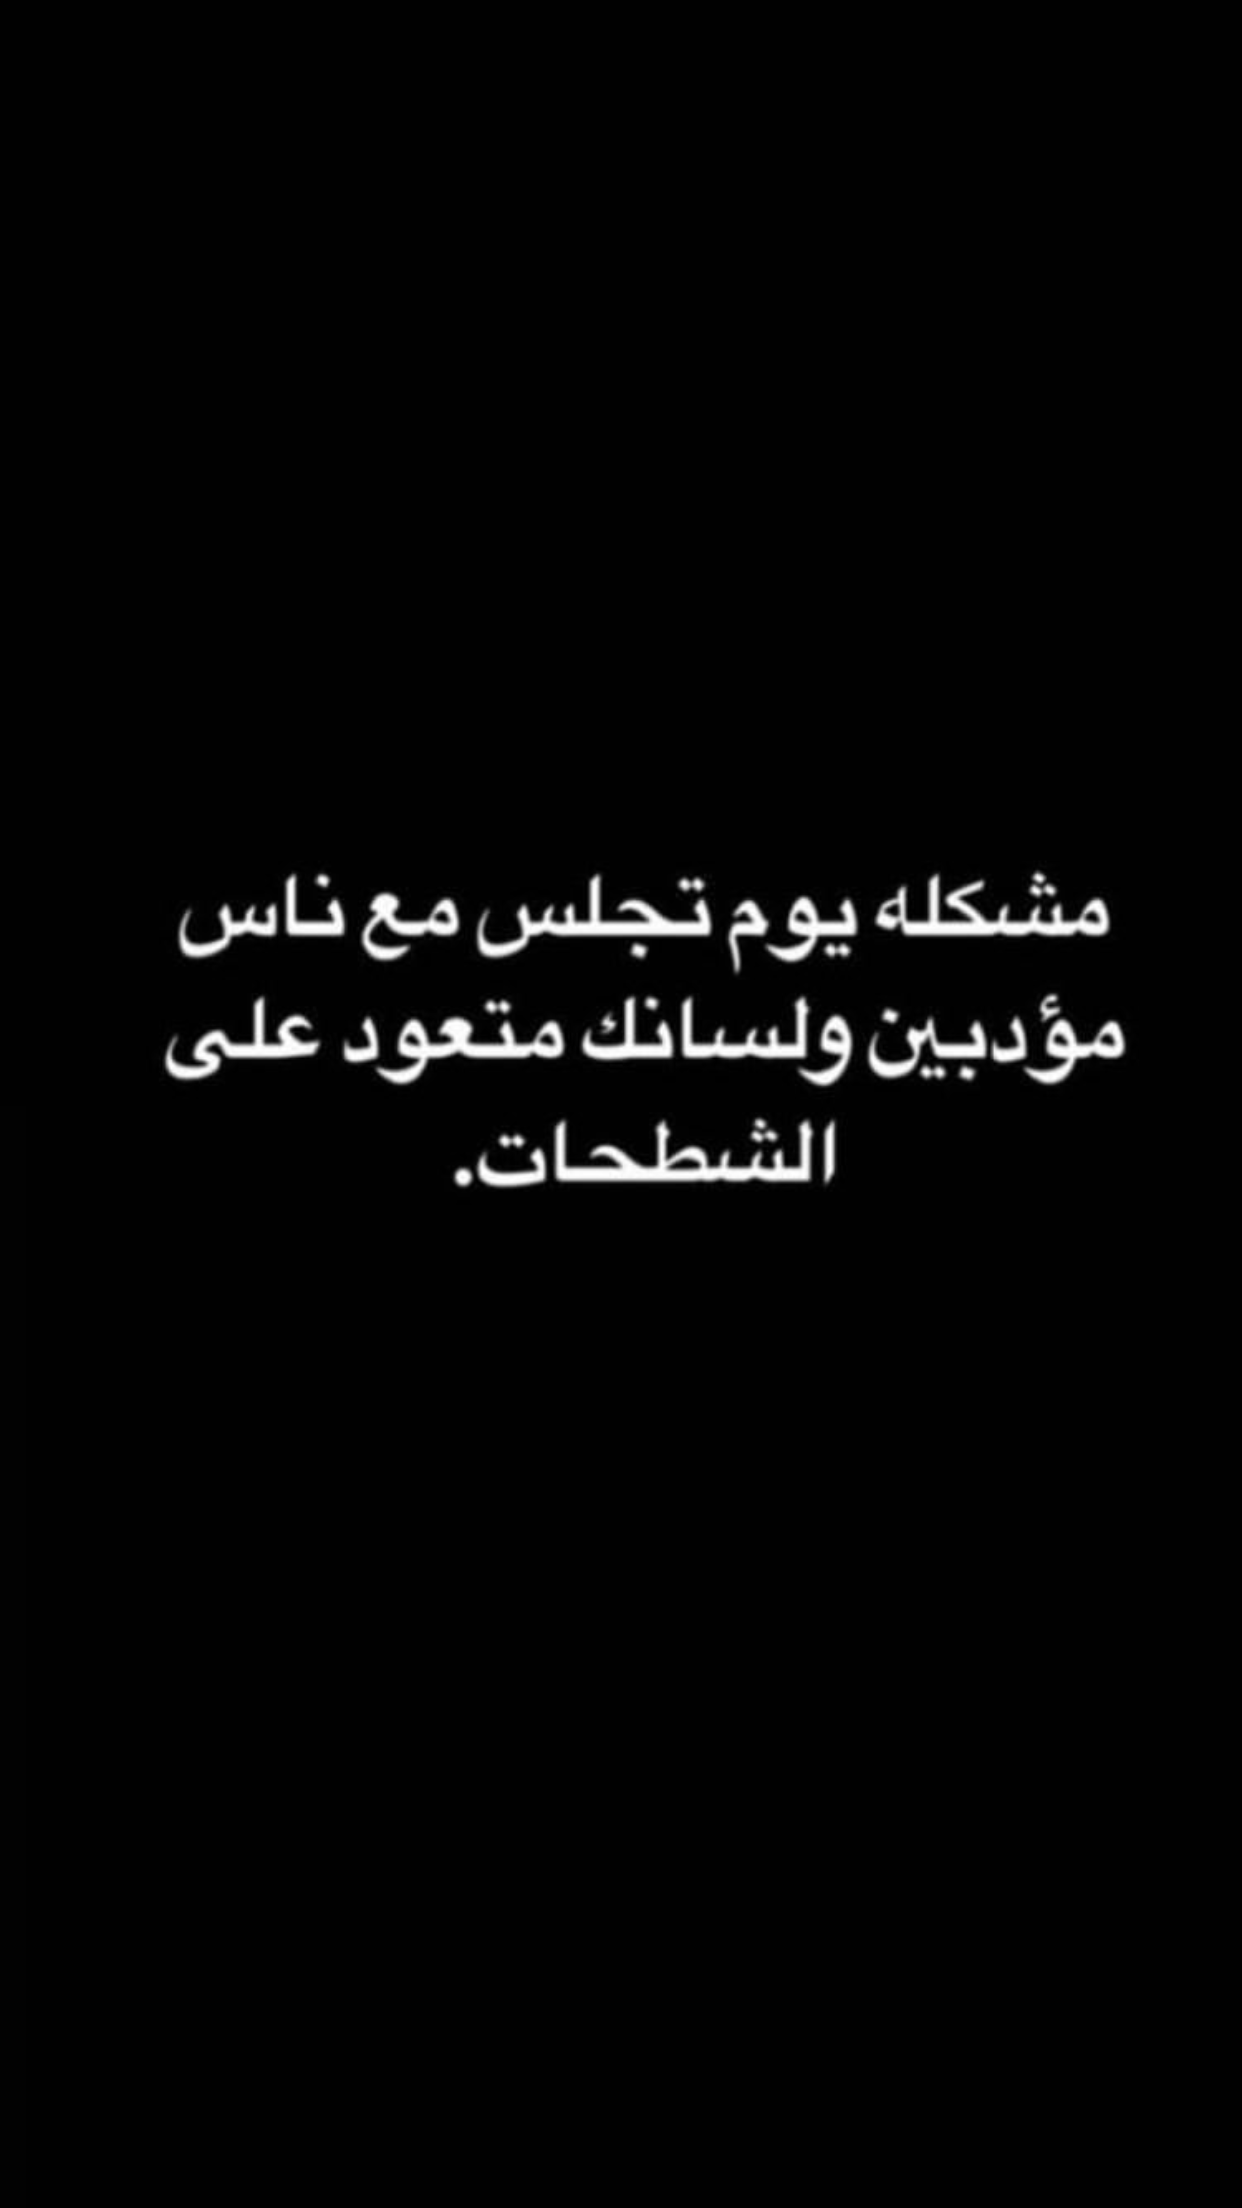 Pin By ليان الجابري On فعاليات ميمز Funny Quotes Fun Quotes Funny Jokes Quotes